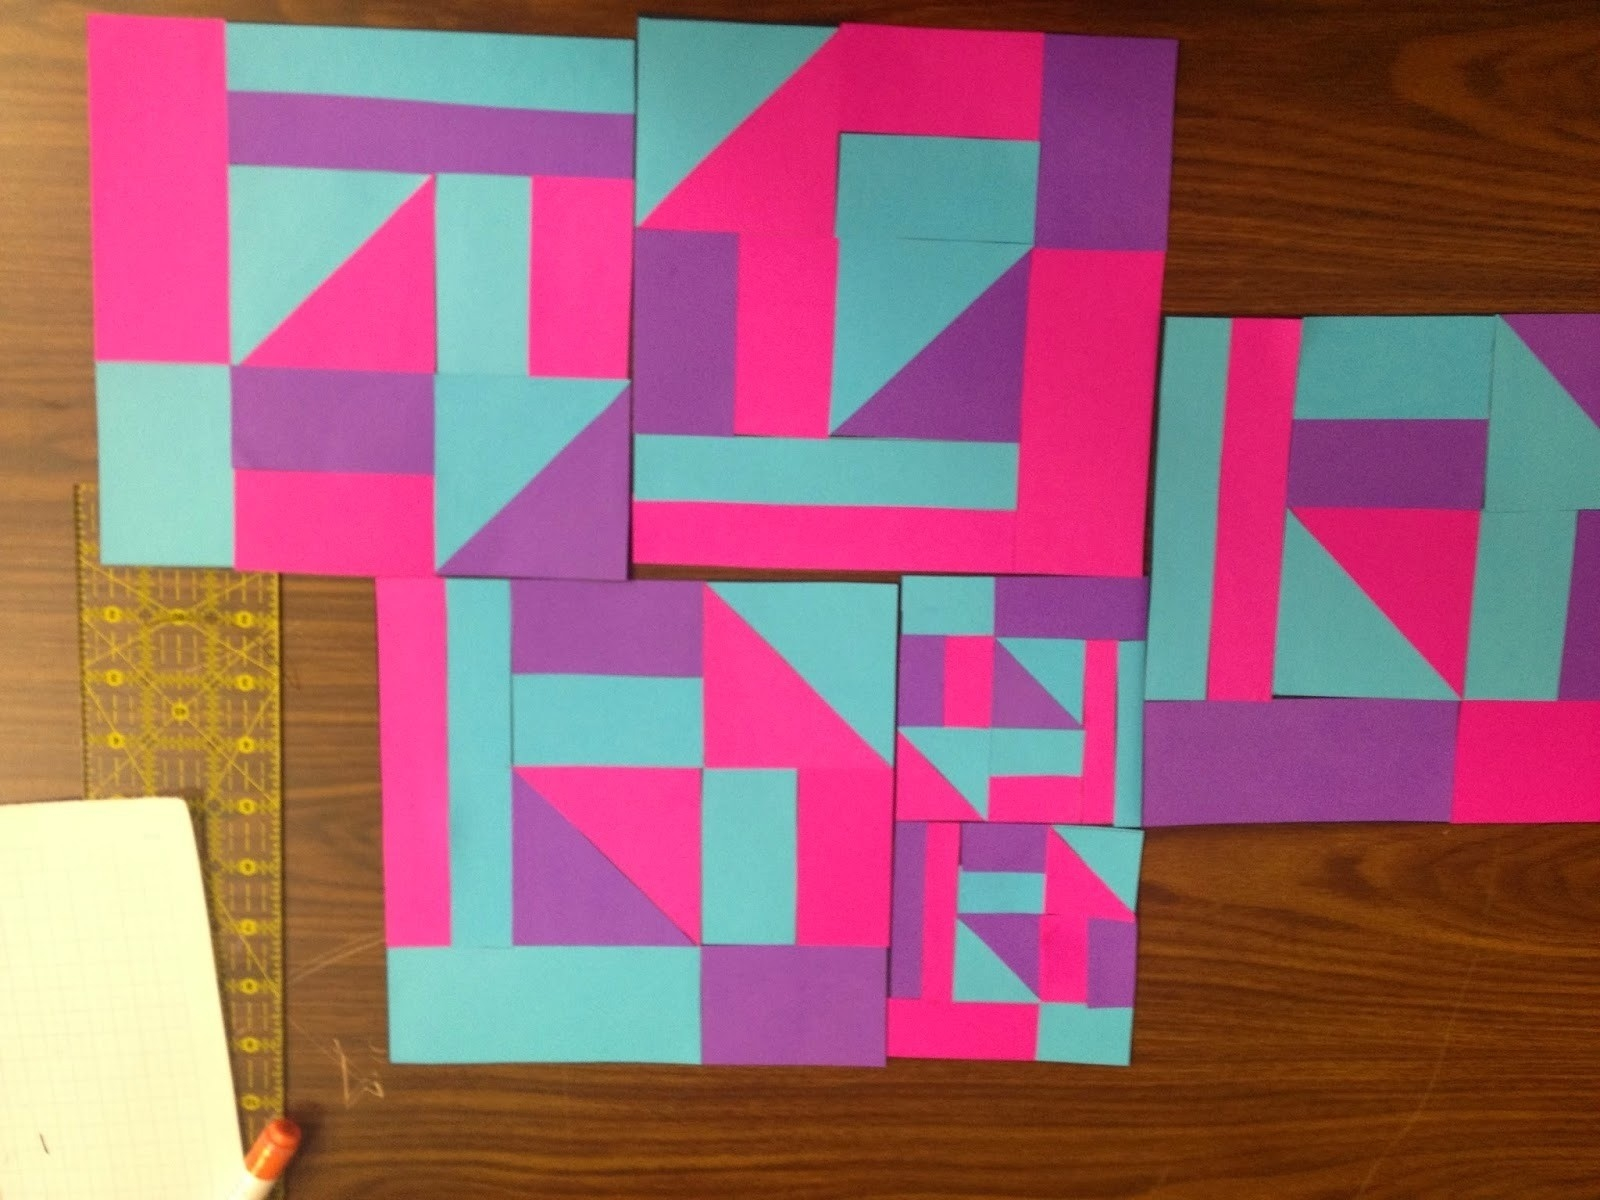 Construction Paper Designs | World Of Example inside Construction Paper Designs 28658